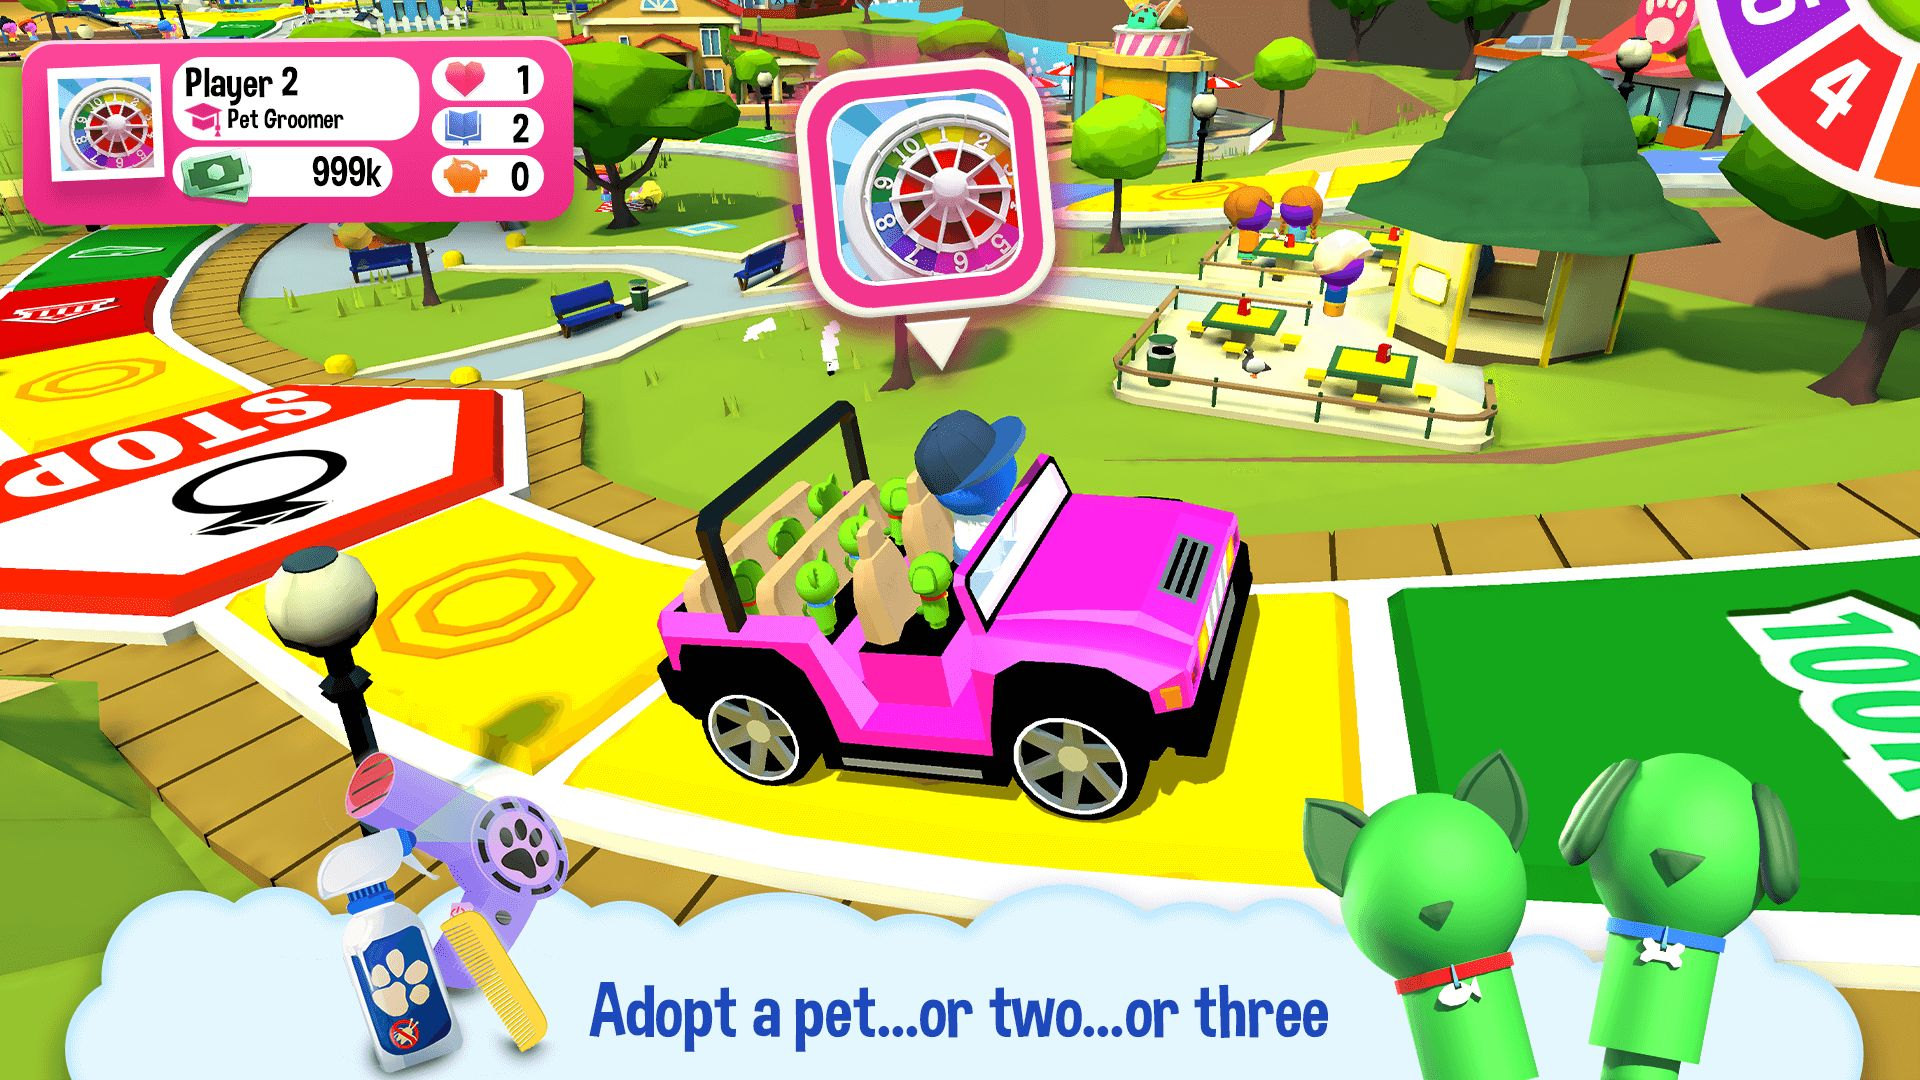 THE GAME OF LIFE 2 - More choices, more freedom! para Android